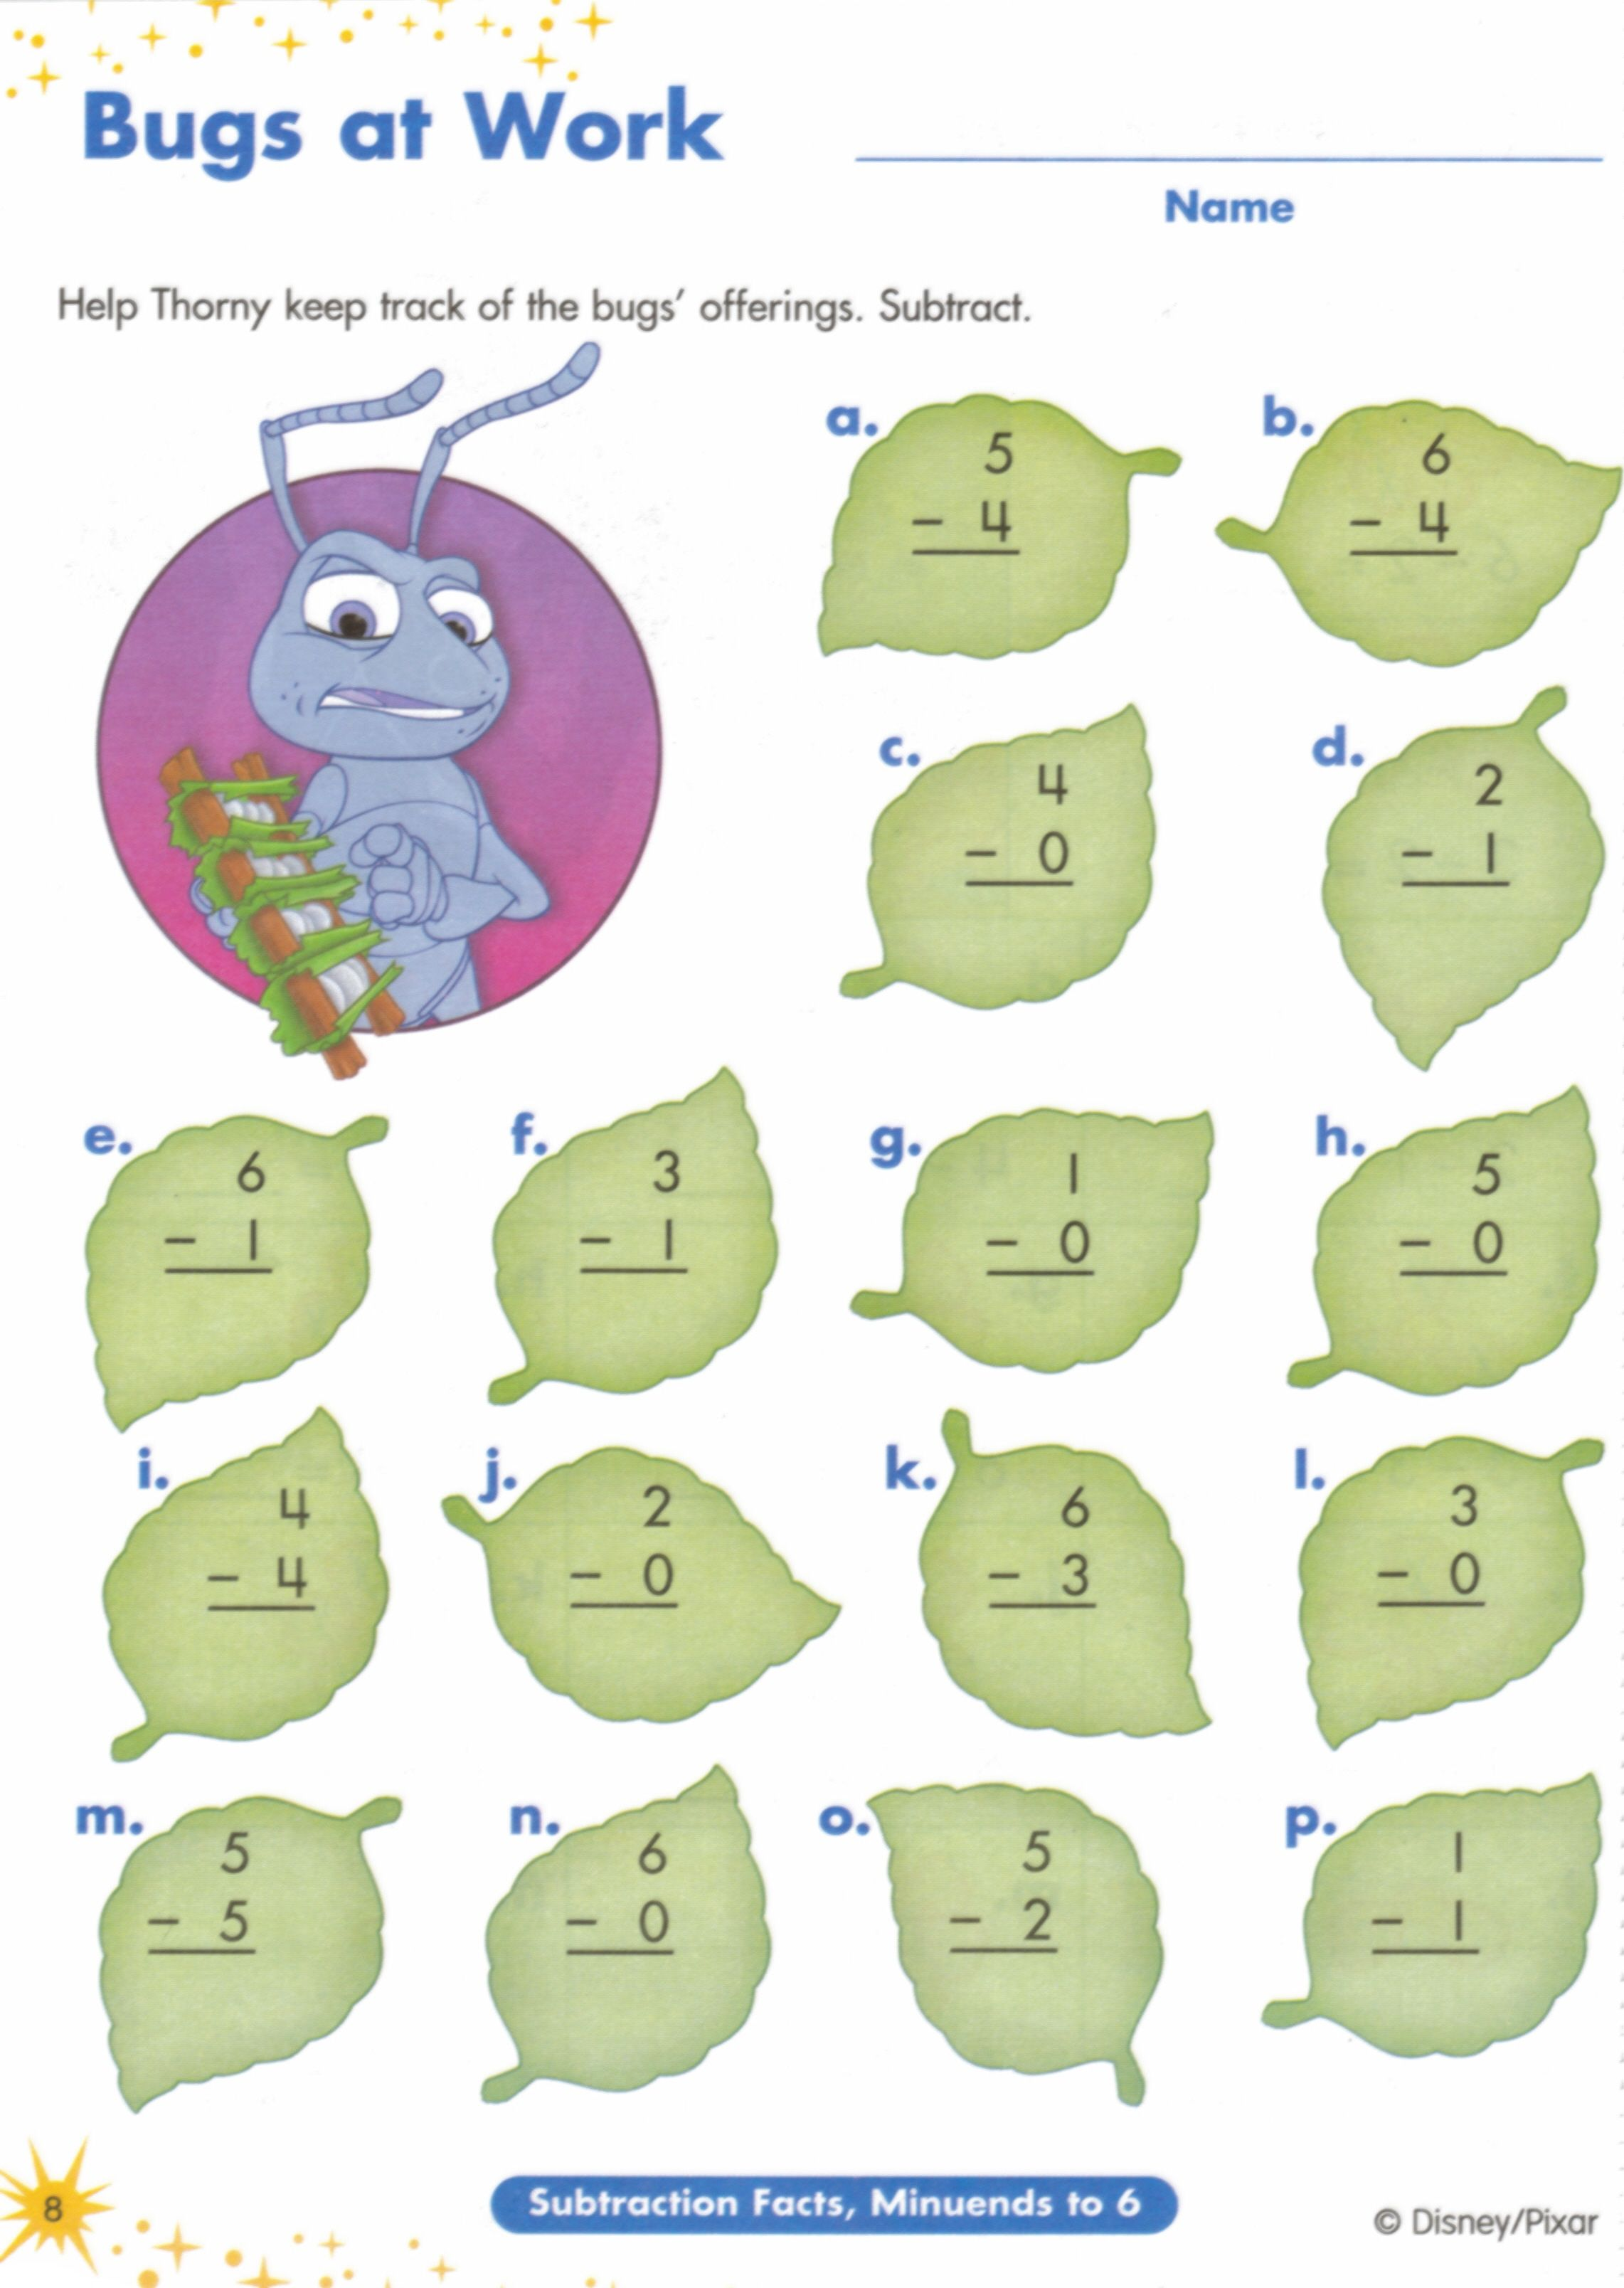 Proatmealus  Winsome  Images About Worksheets On Pinterest  Fun Facts For Kids  With Likable  Images About Worksheets On Pinterest  Fun Facts For Kids Earth Day Worksheets And Jungles With Delectable Th Grade Worksheet Also Box Whisker Plot Worksheet In Addition Short Vowel Worksheets For Kindergarten And High School Social Studies Worksheets As Well As Th Grade Addition Worksheets Additionally Pronouns Worksheets Nd Grade From Pinterestcom With Proatmealus  Likable  Images About Worksheets On Pinterest  Fun Facts For Kids  With Delectable  Images About Worksheets On Pinterest  Fun Facts For Kids Earth Day Worksheets And Jungles And Winsome Th Grade Worksheet Also Box Whisker Plot Worksheet In Addition Short Vowel Worksheets For Kindergarten From Pinterestcom